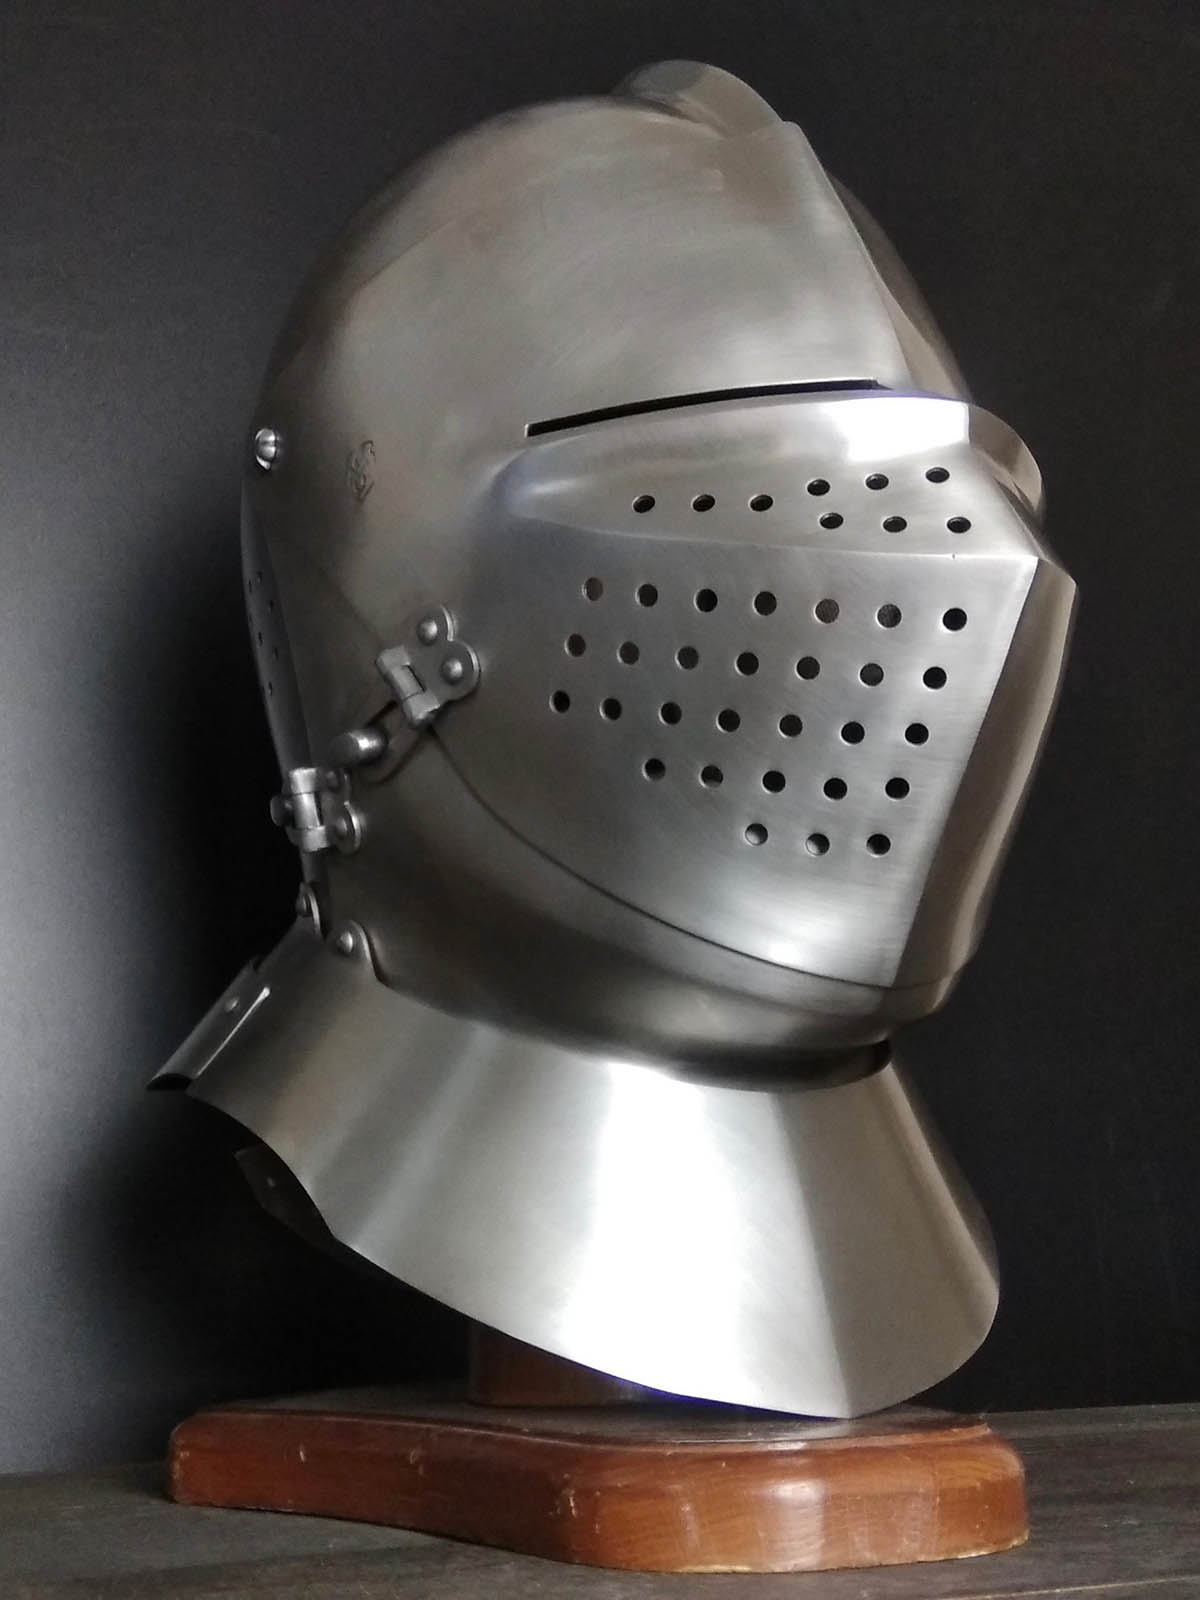 Updating of armet (closed helmet) 15th-16th century